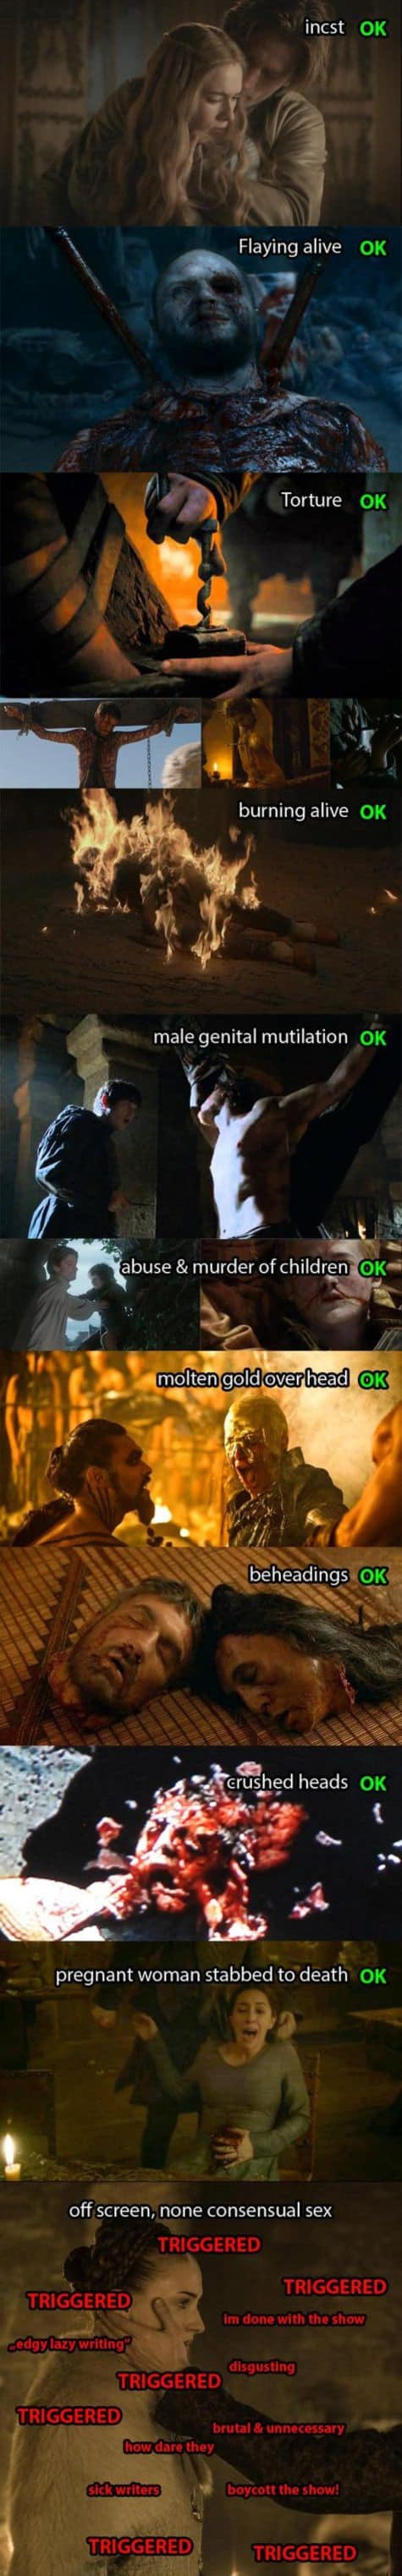 Game of Sygdomme